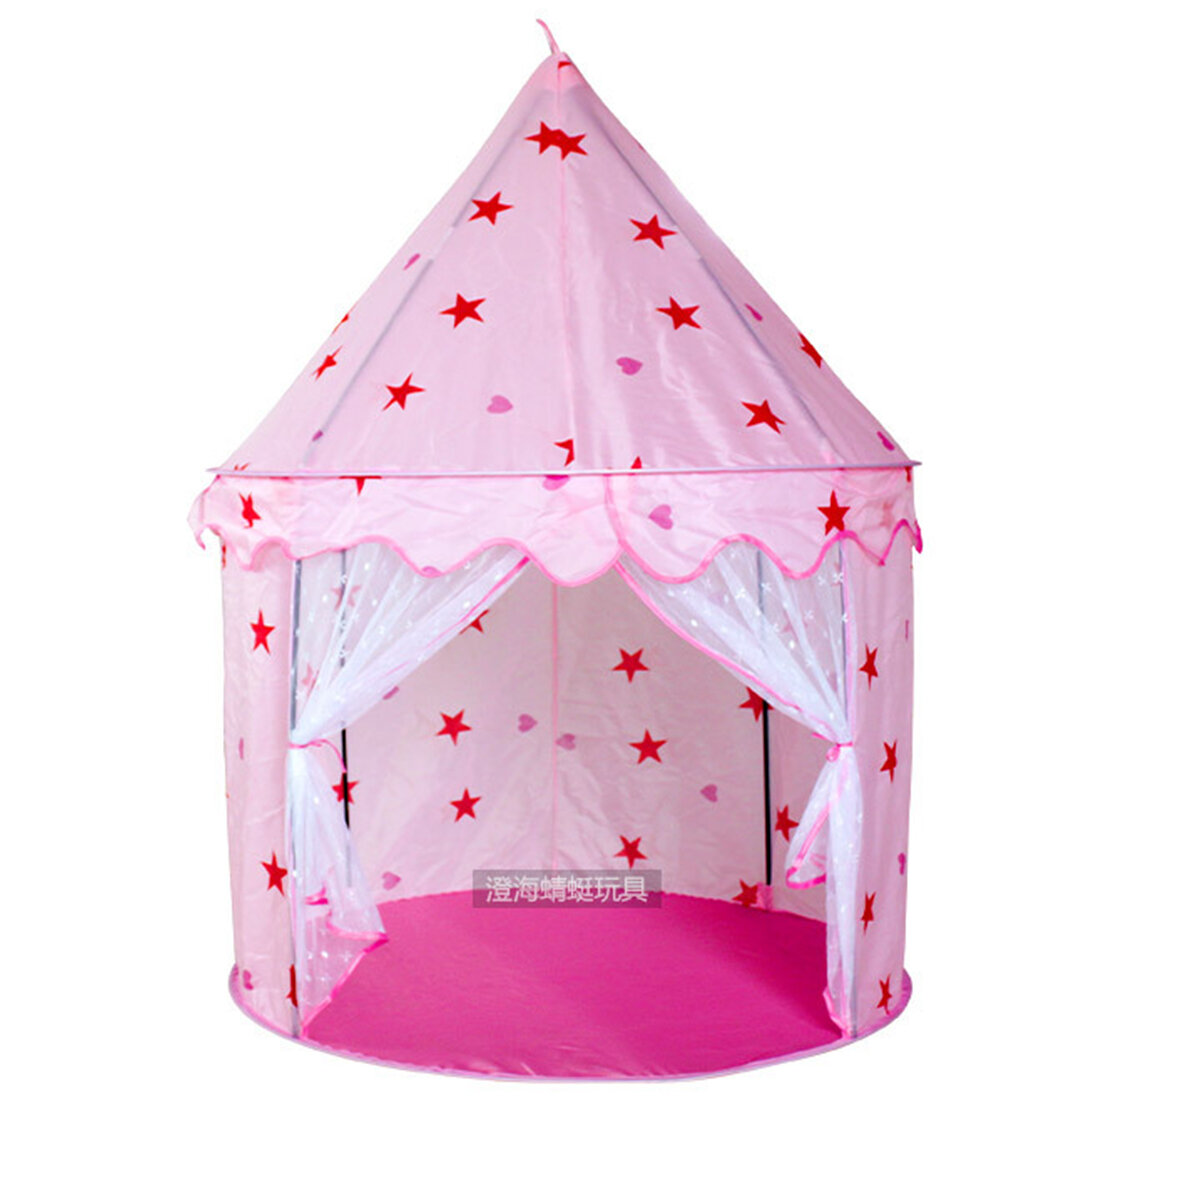 Creative Newborn Baby Photography Props Tent Background Studio Photo Decoration - 2